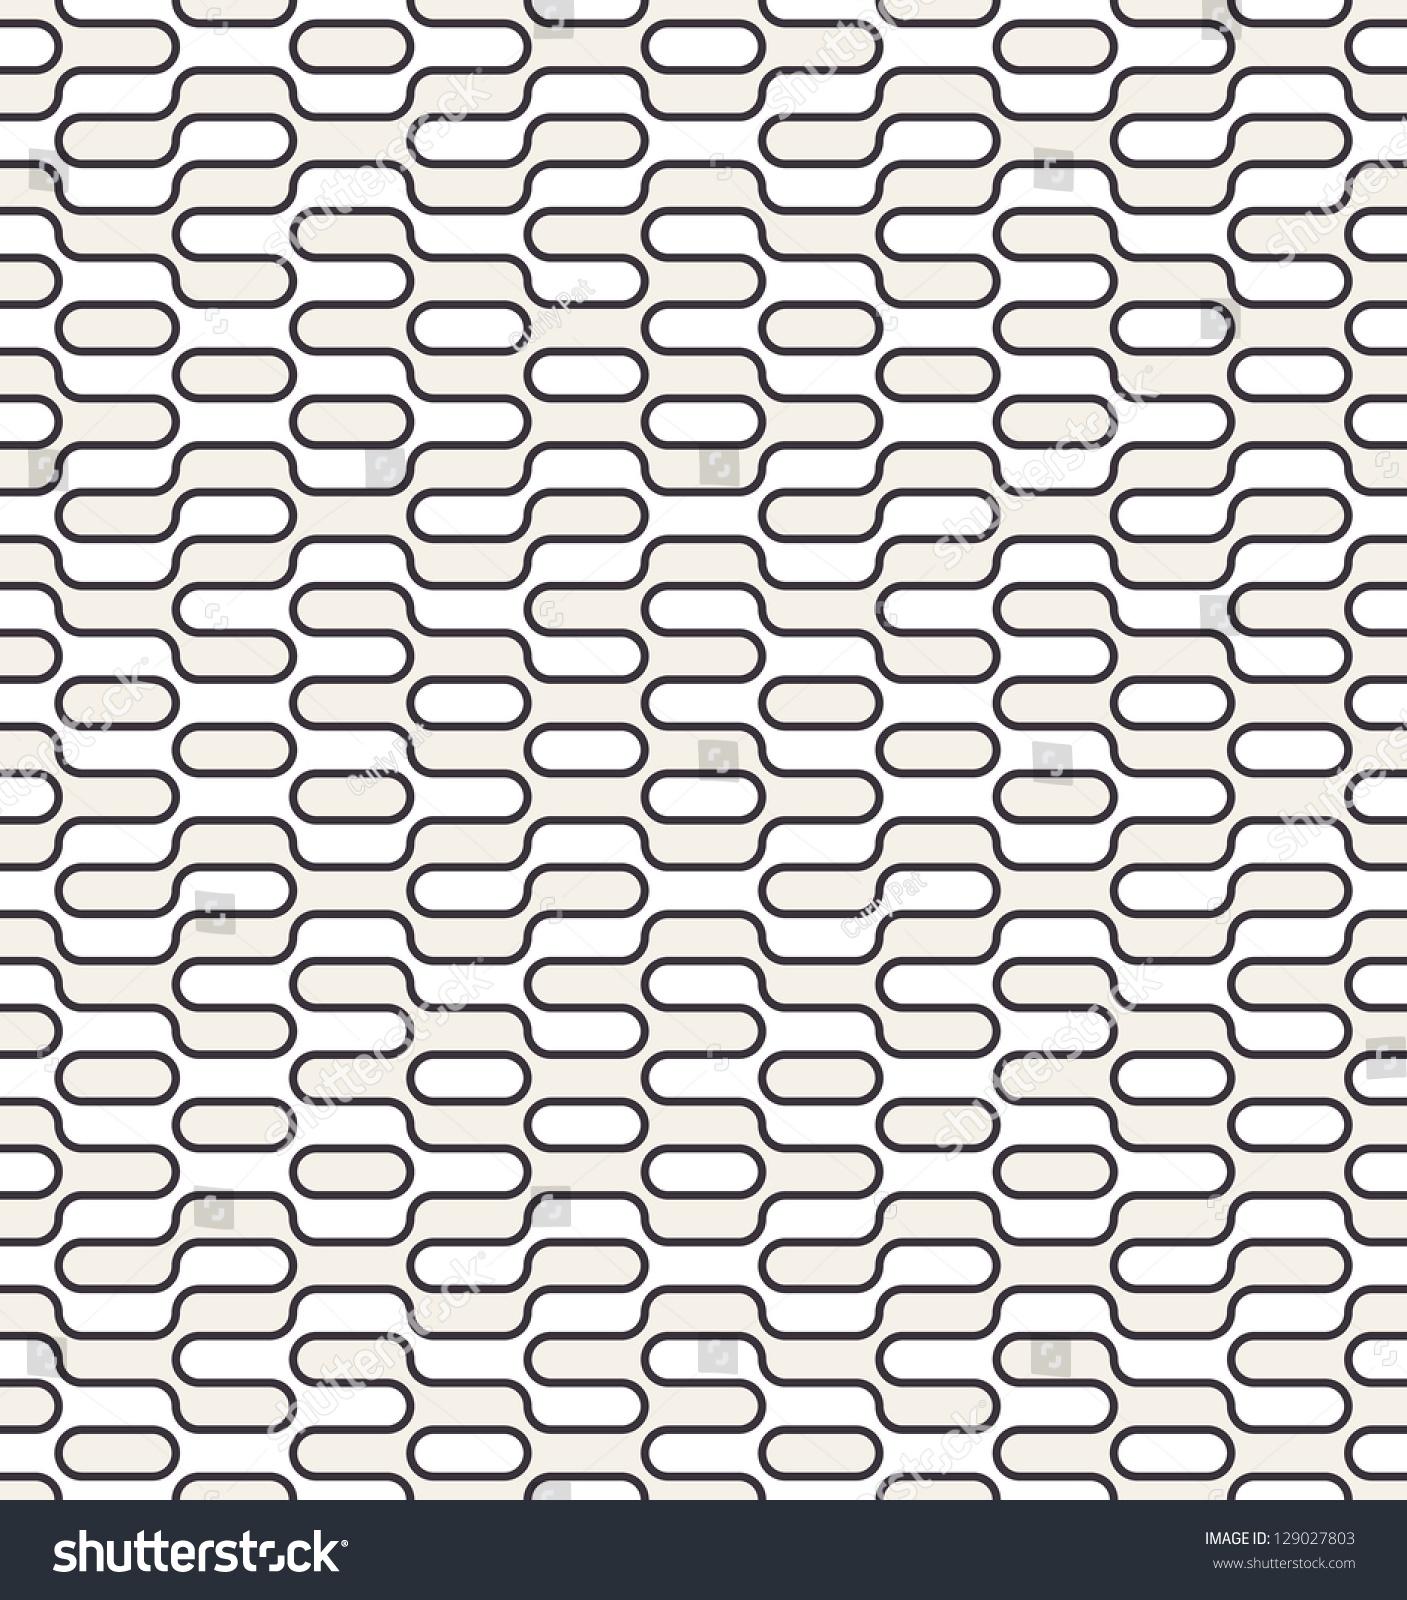 Seamless Grid Pattern Mesh Texture Repeating Mesh Stock